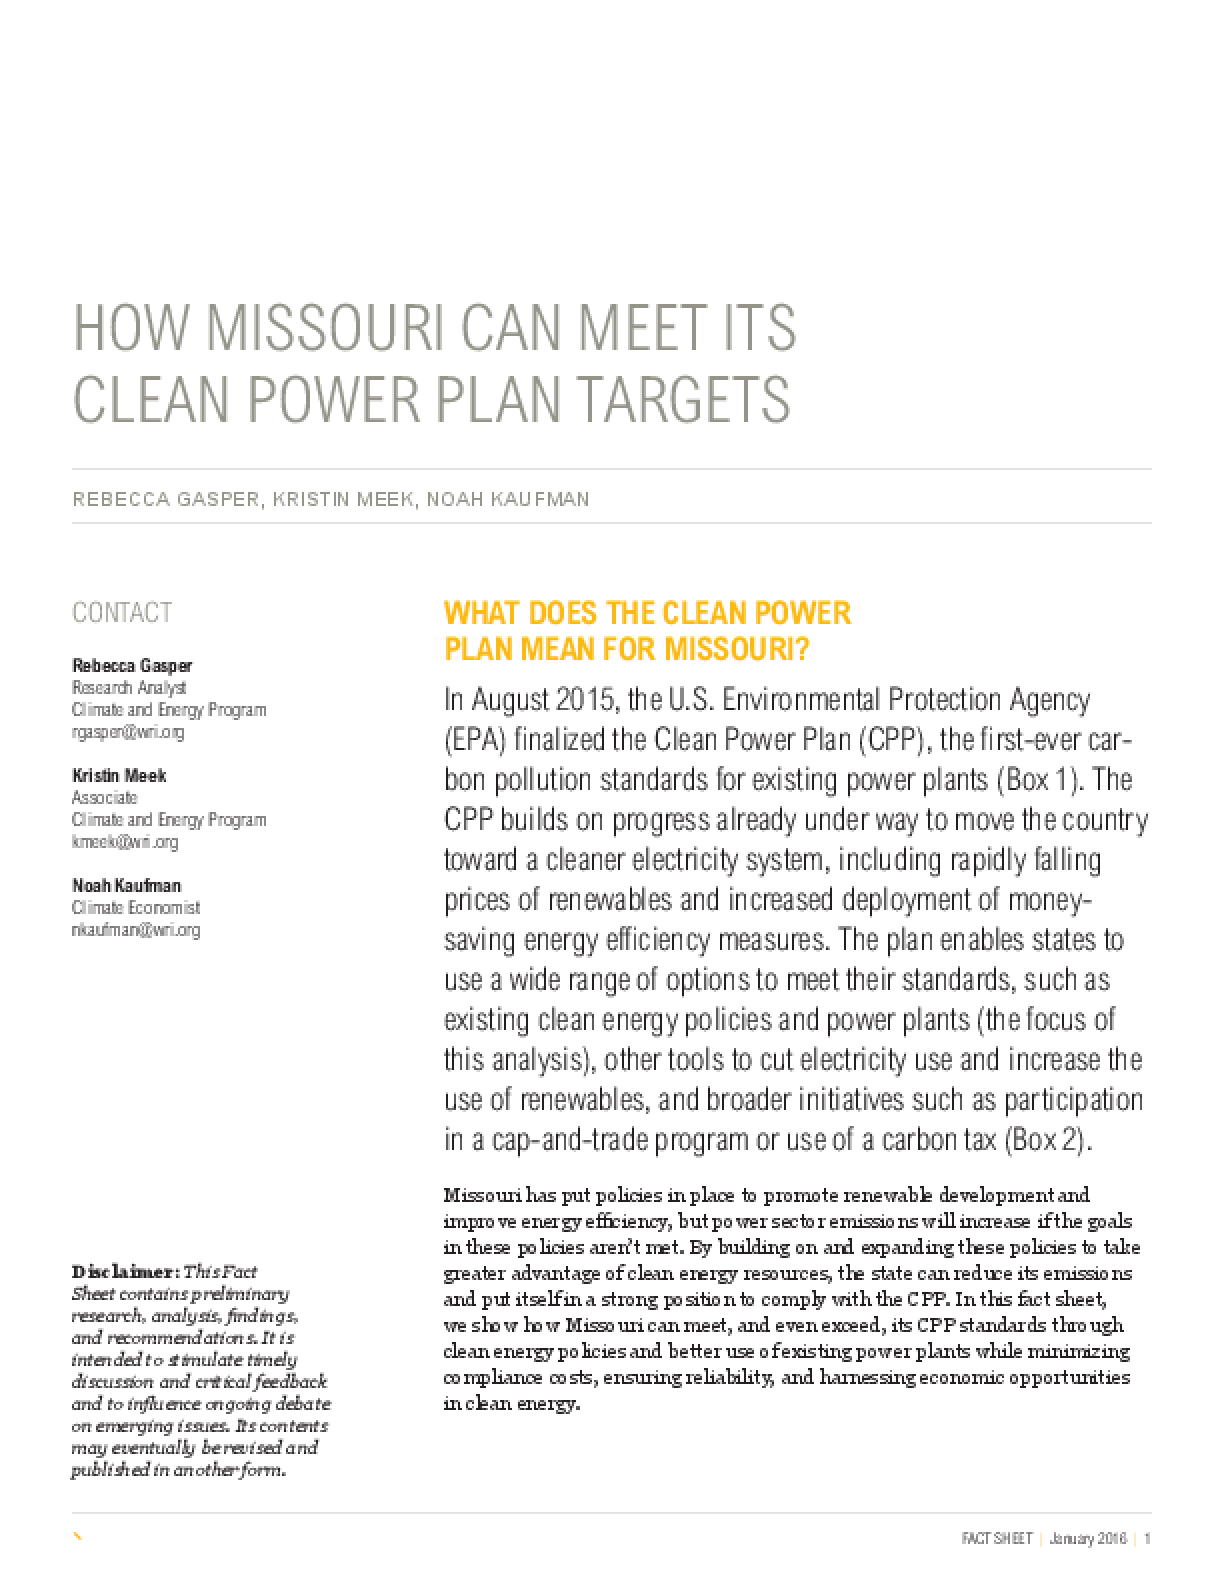 How Missouri Can Meet Its Clean Power Plan Targets